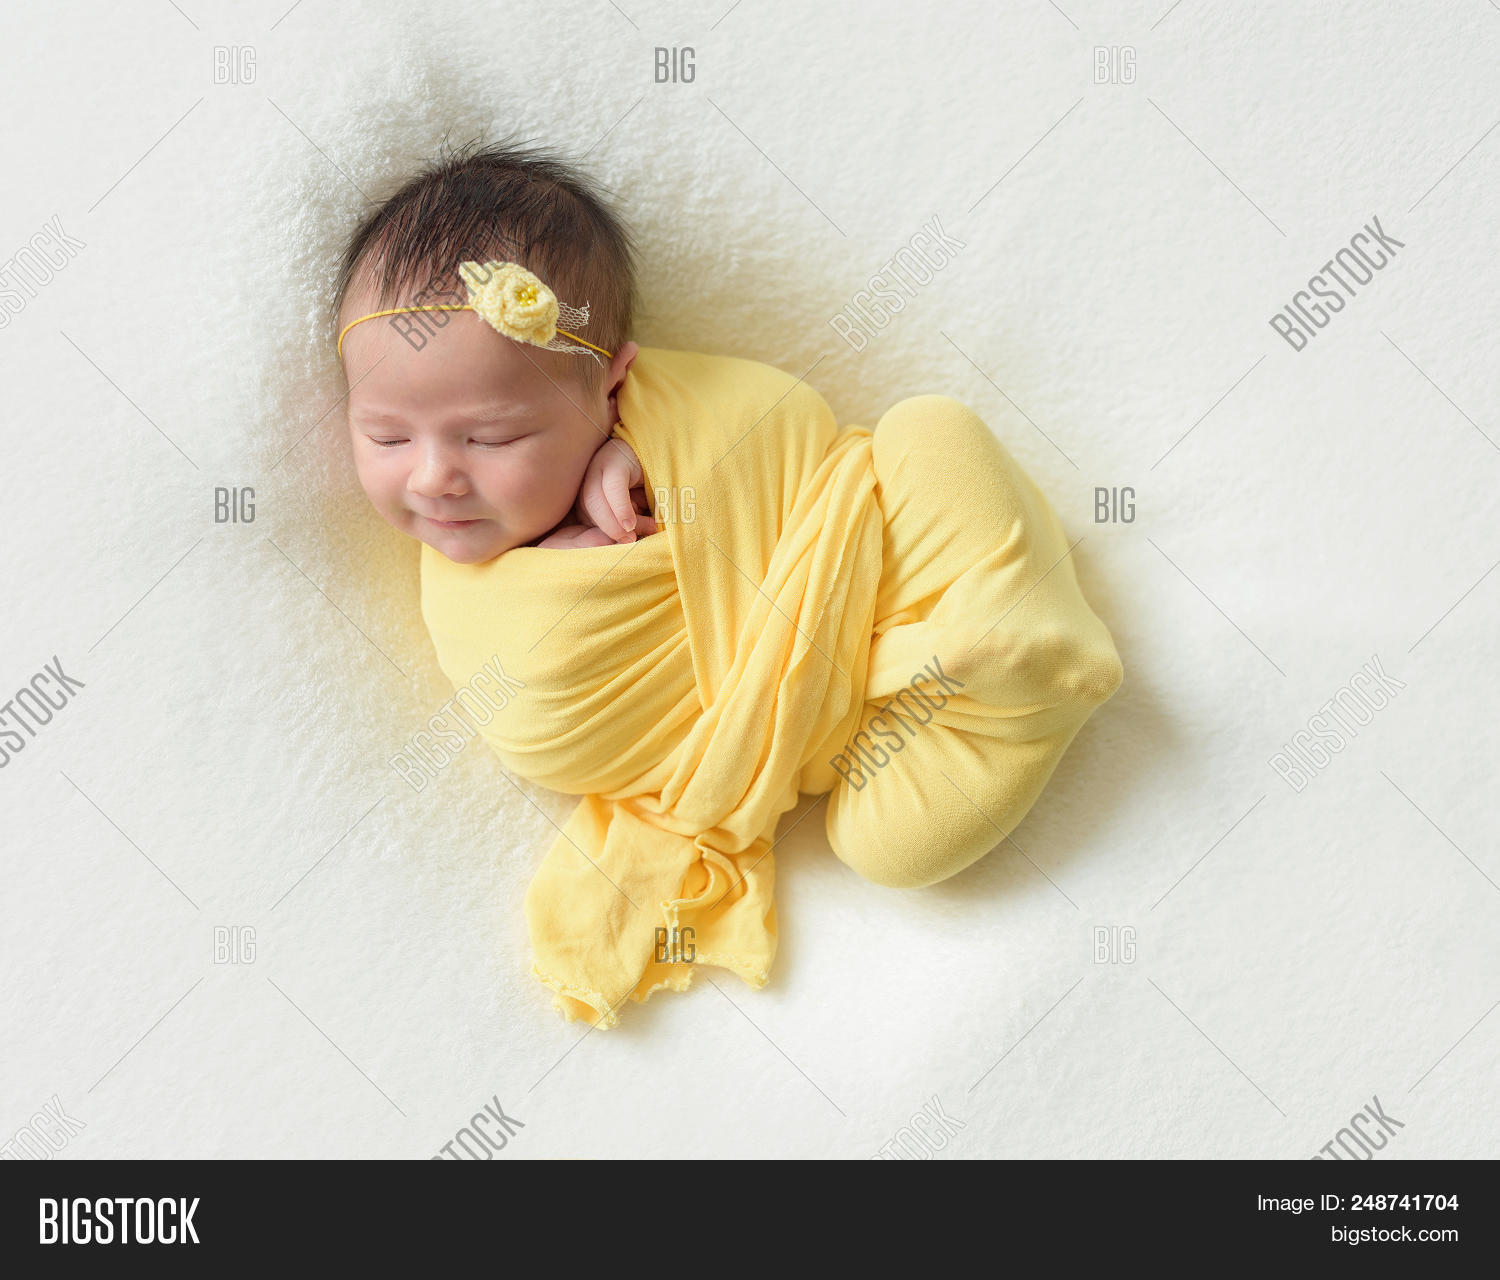 Cute Sleeping Newborn Baby Girl 248741704 Image Stock Photo